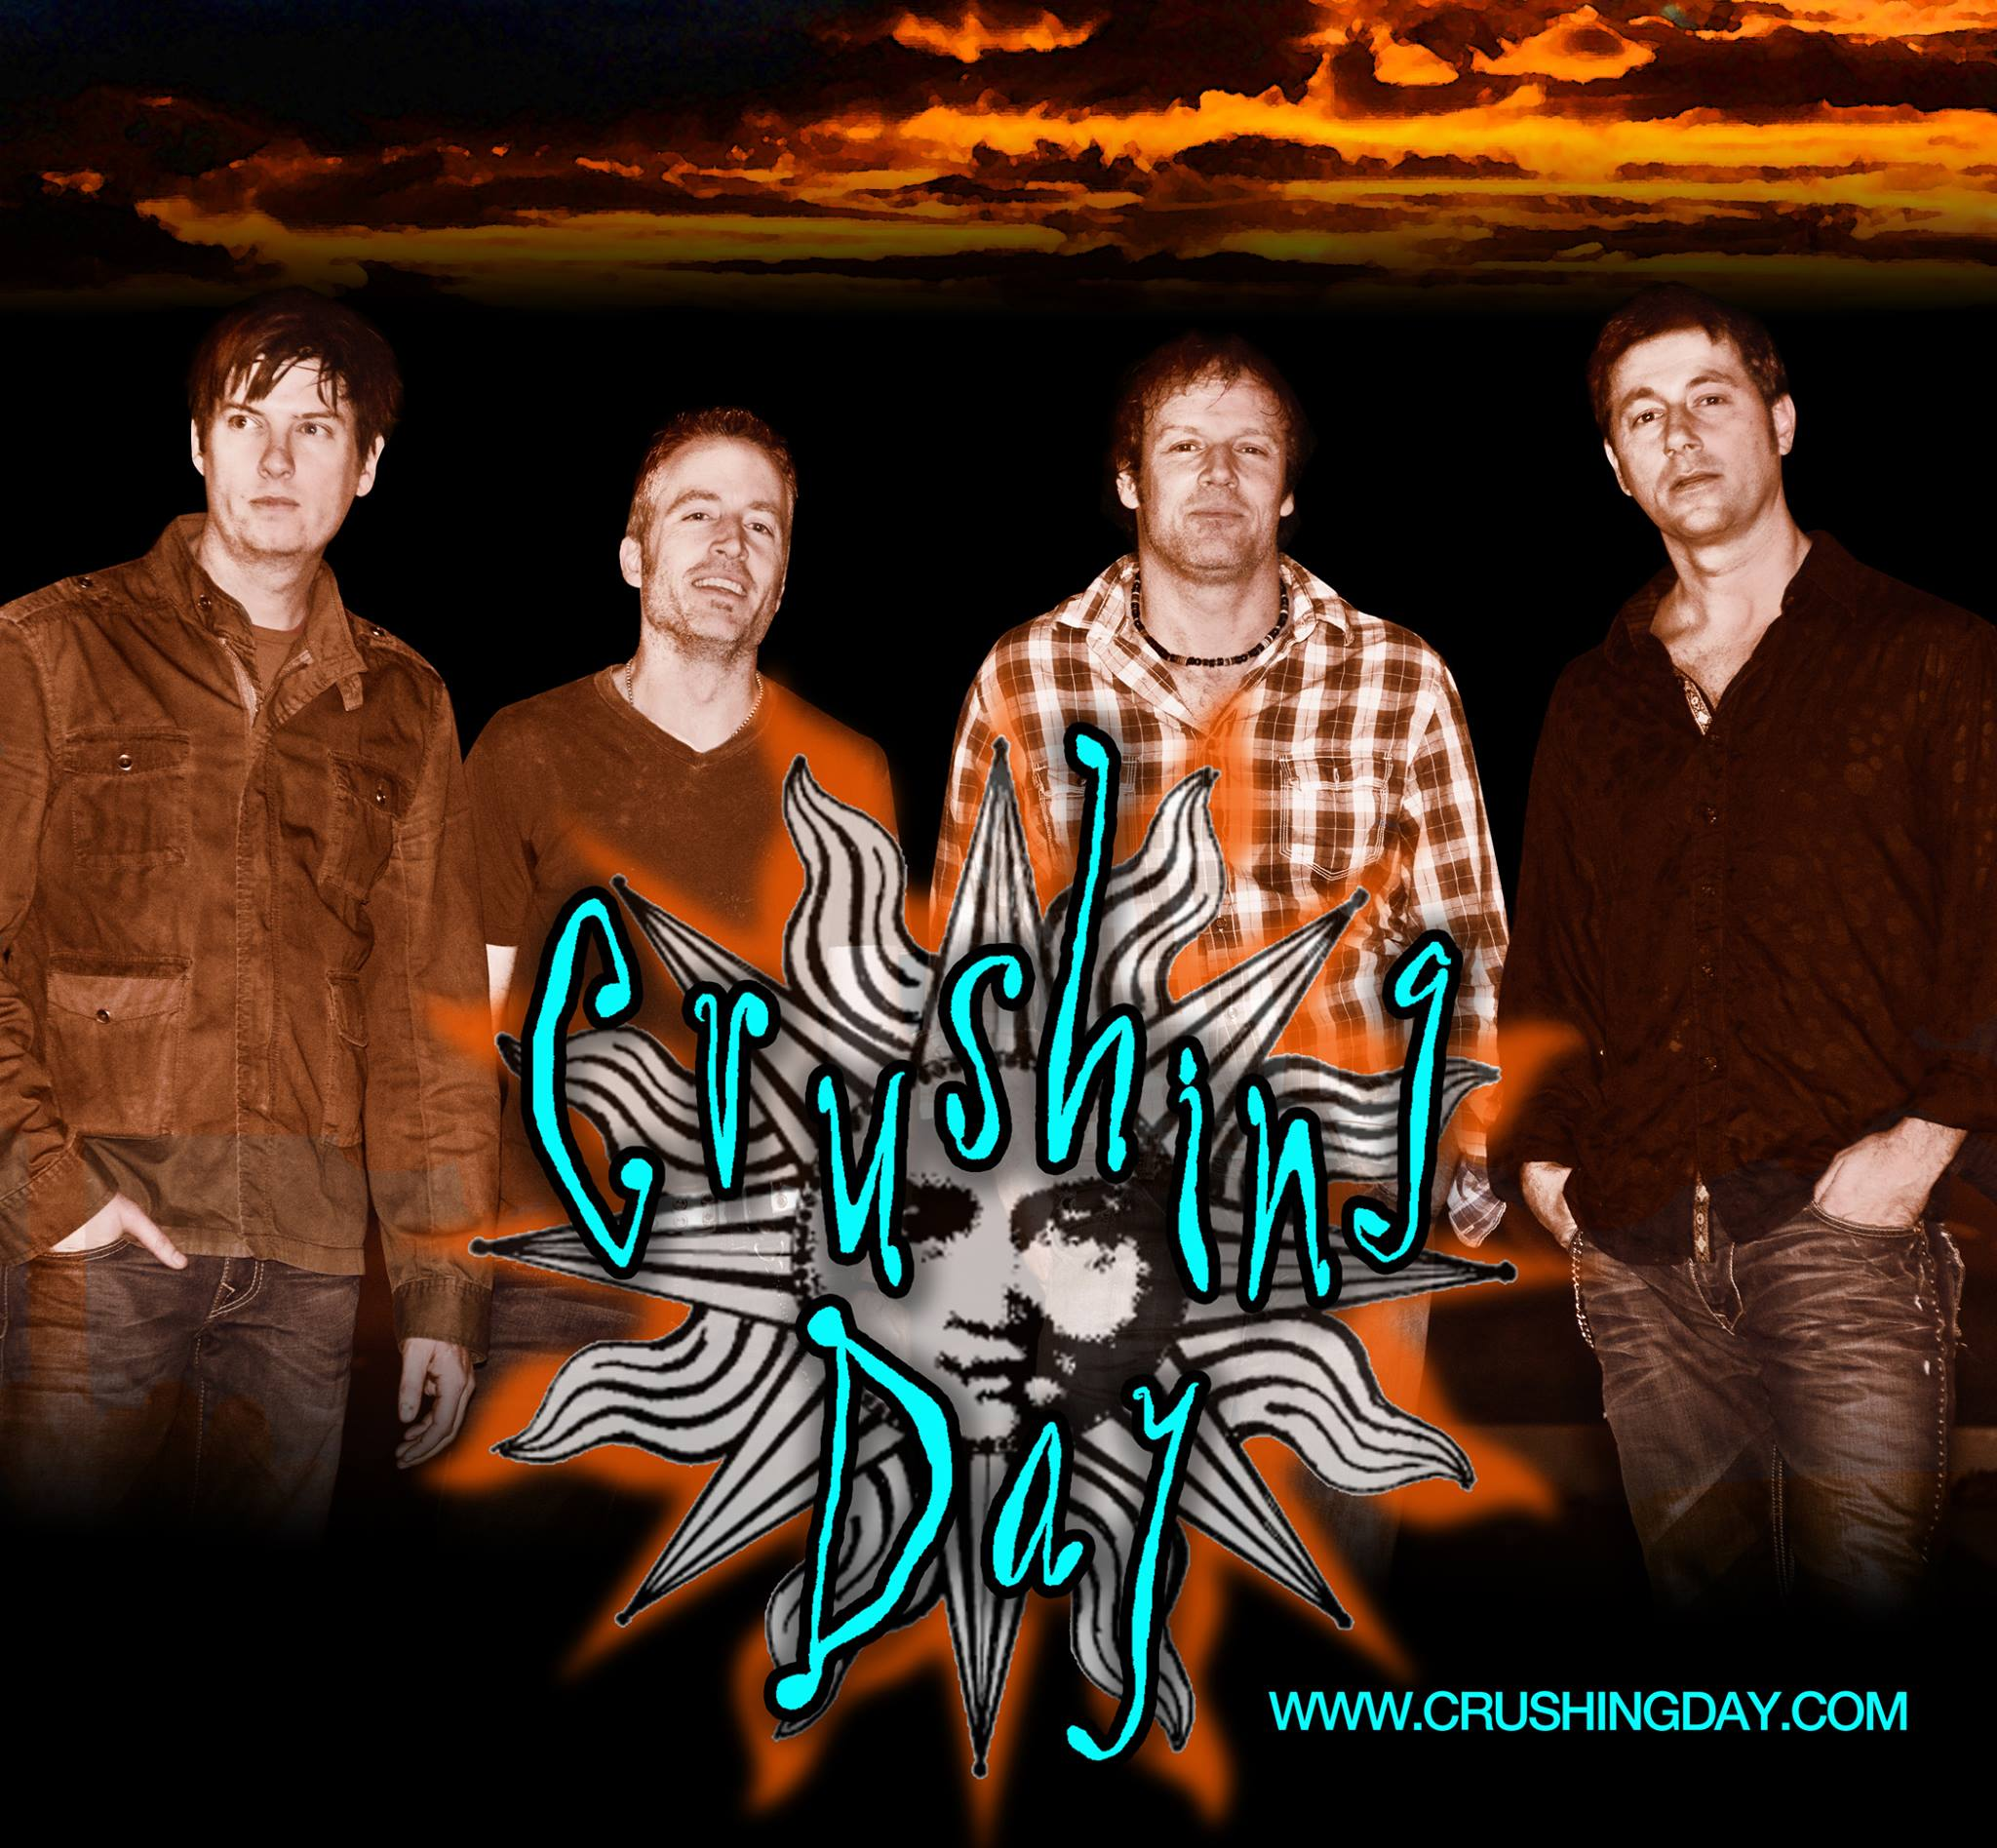 Crushing Day plays at Charm City Countdown NYE Gala